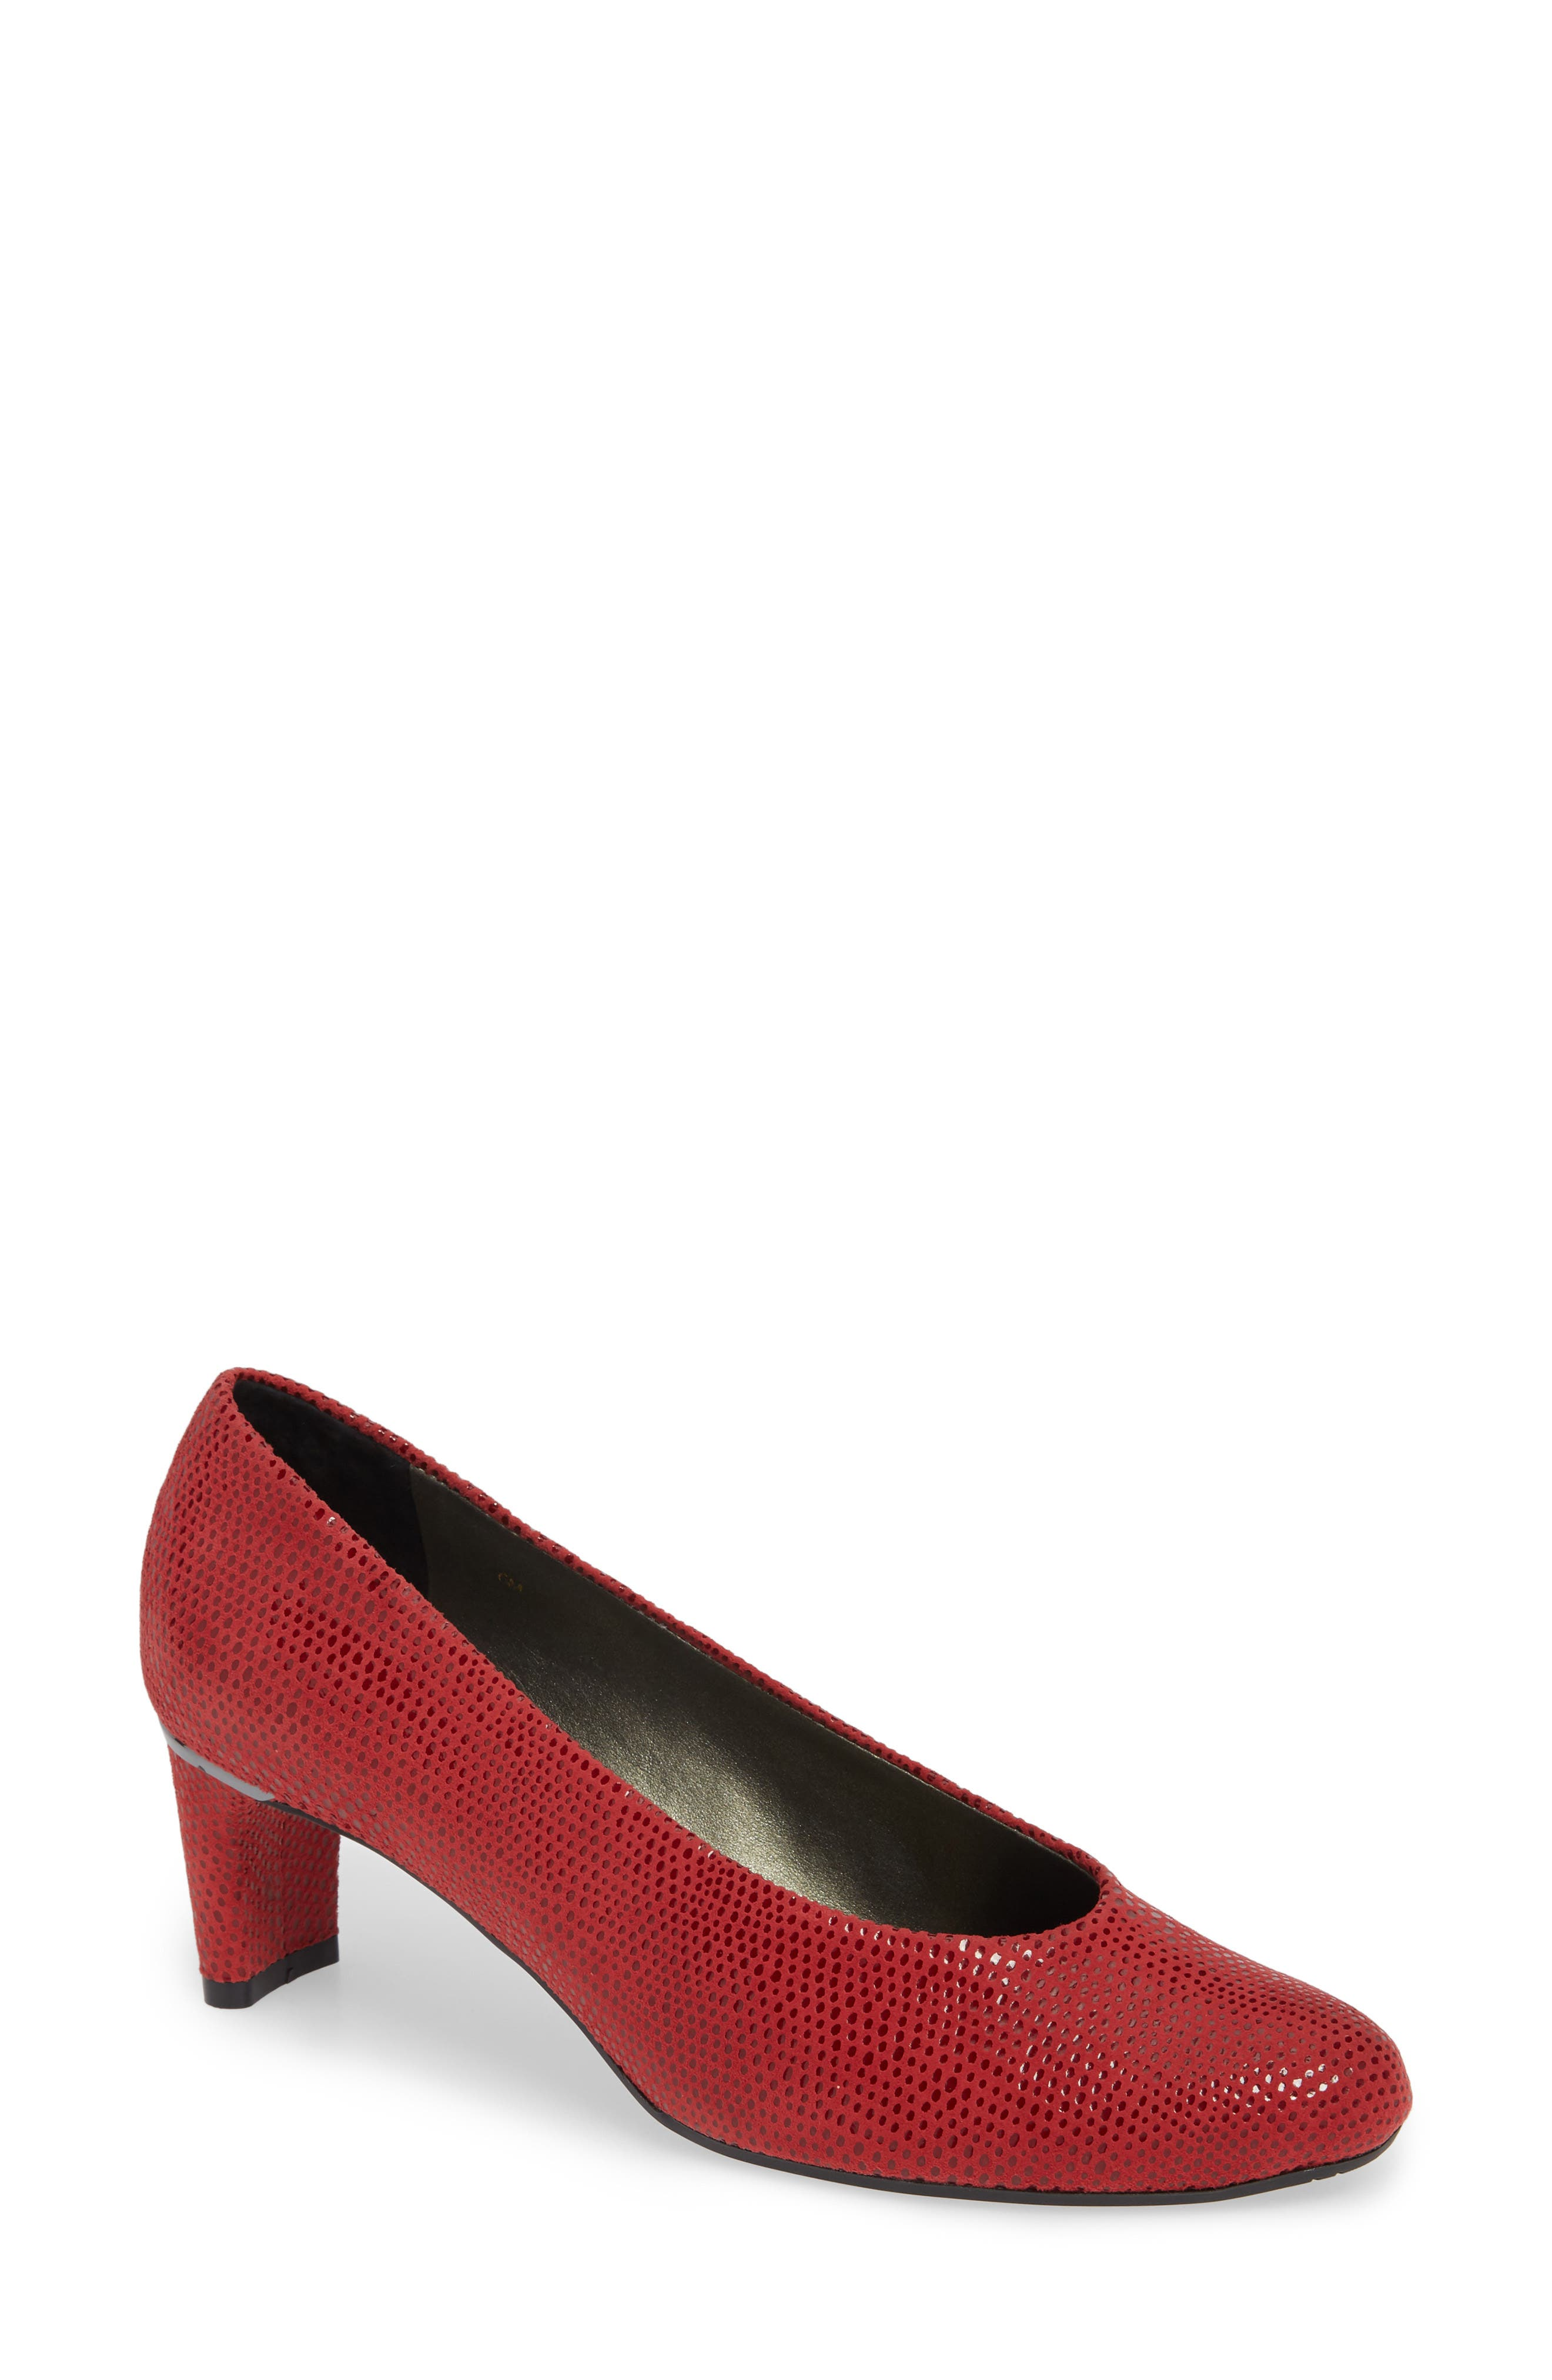 'Dayle' Pump,                         Main,                         color, RED LEATHER